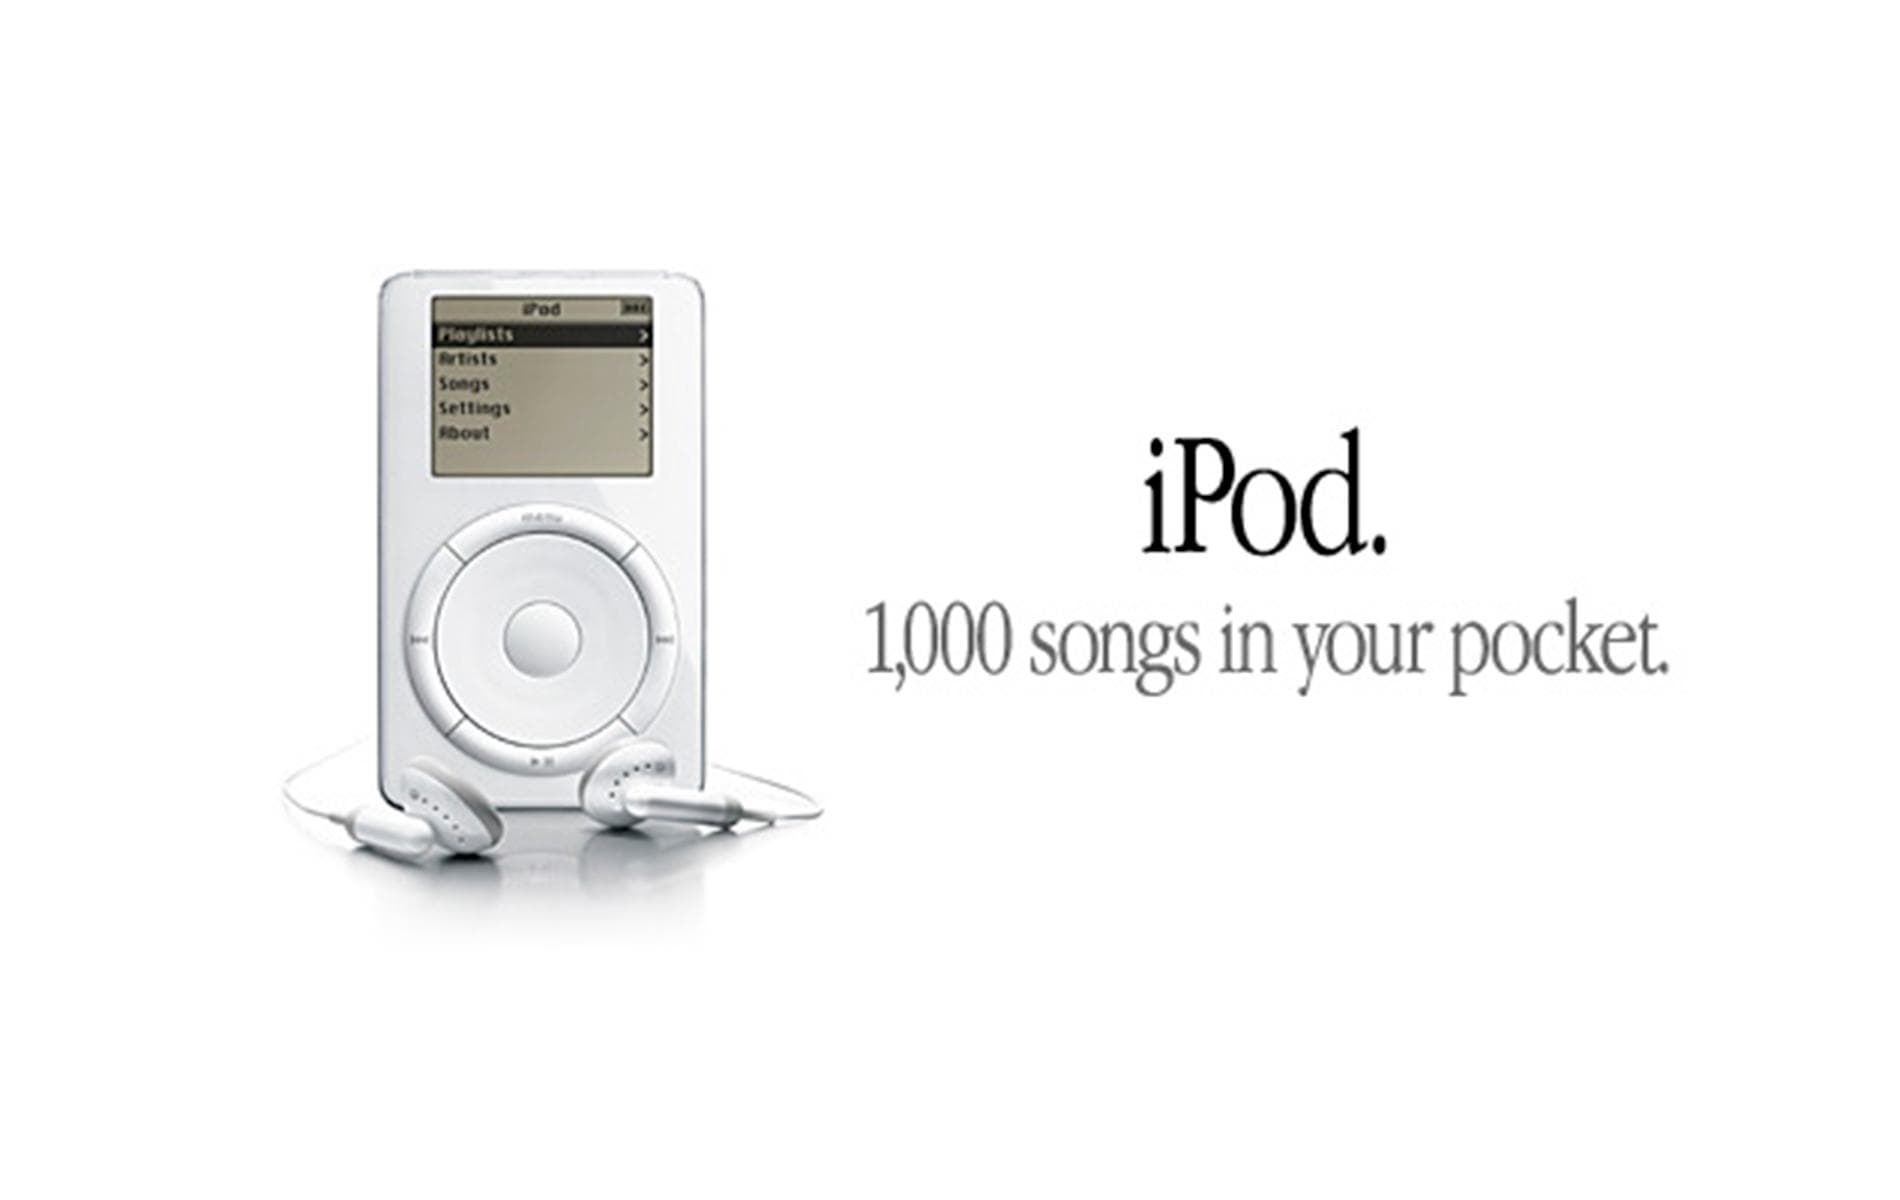 apple ipod slogan